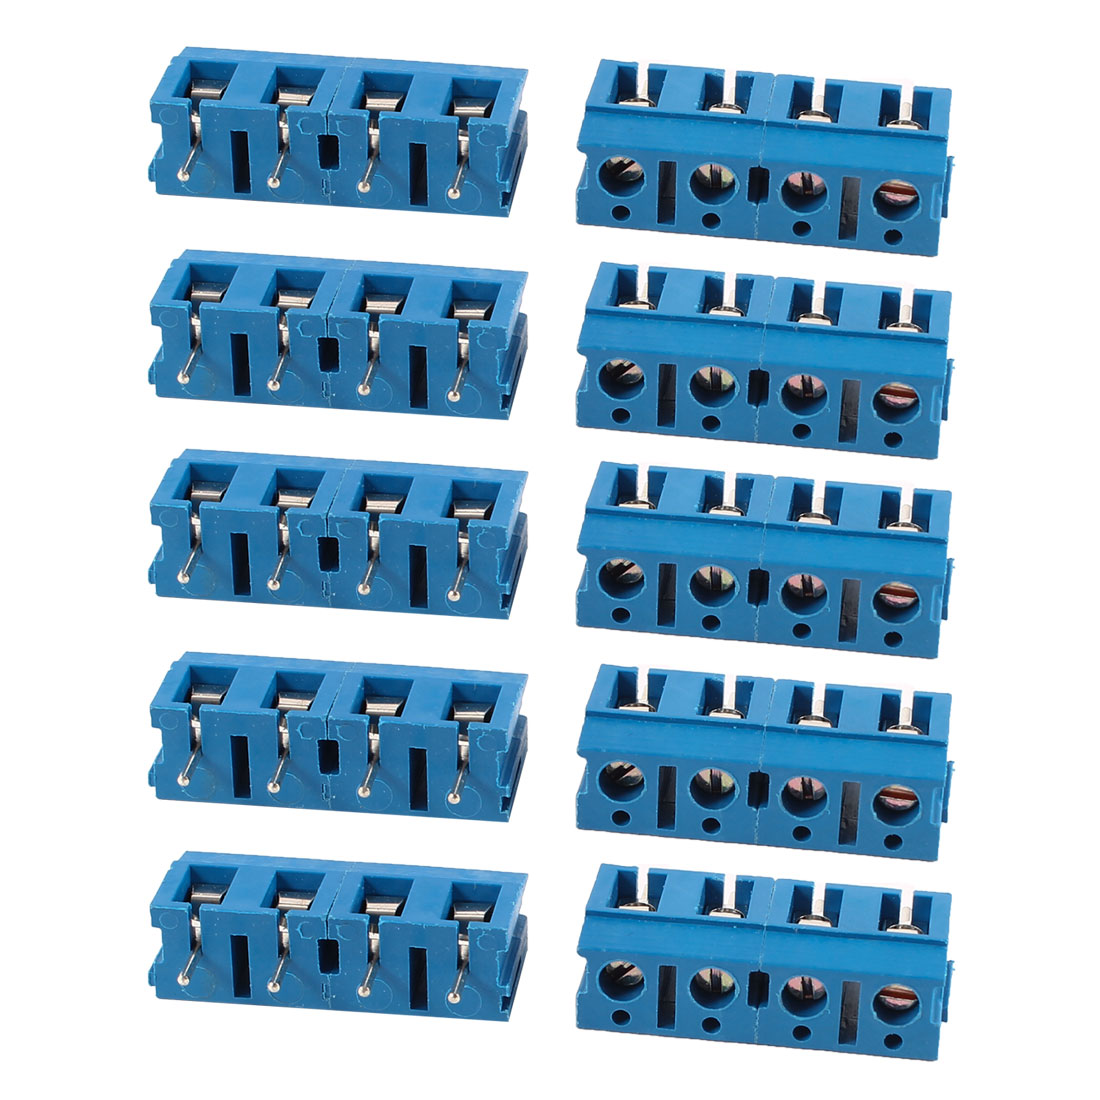 10 Pcs Blue KF370-4P 4 Position 7.5mm Pitch PCB Mount Screw Terminal Block Connectors 300V 16A